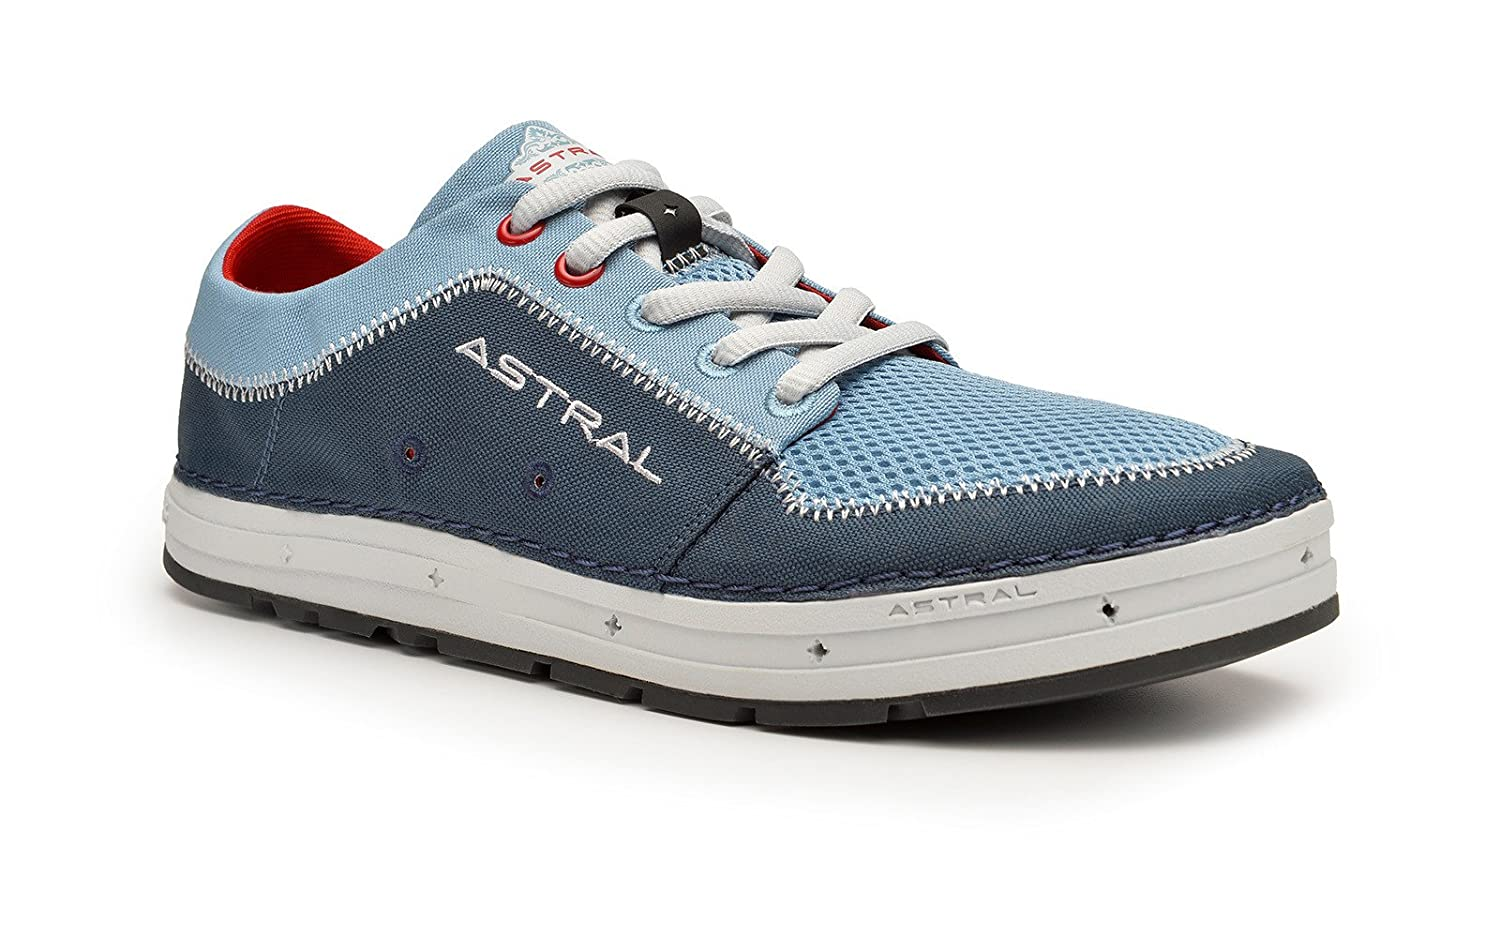 Astral Brewer Water Shoe - Men\'s Murica